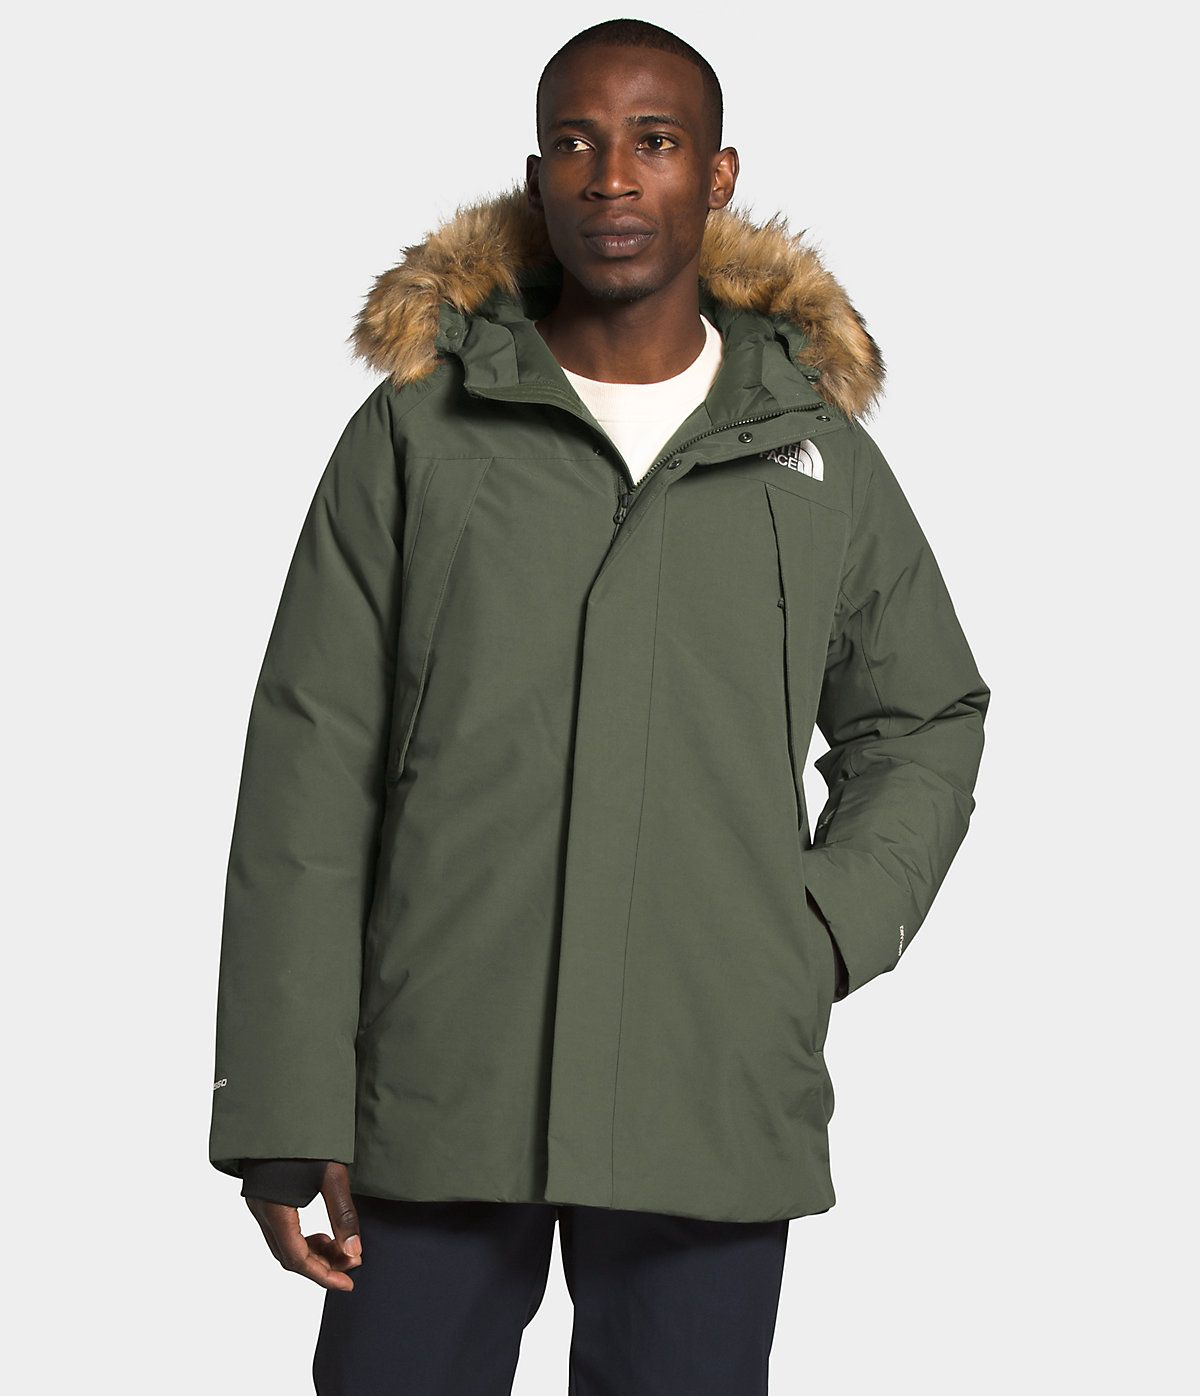 Men S New Outer Boroughs Jacket The North Face North Face Mens The North Face Insulated Jackets [ 1396 x 1200 Pixel ]